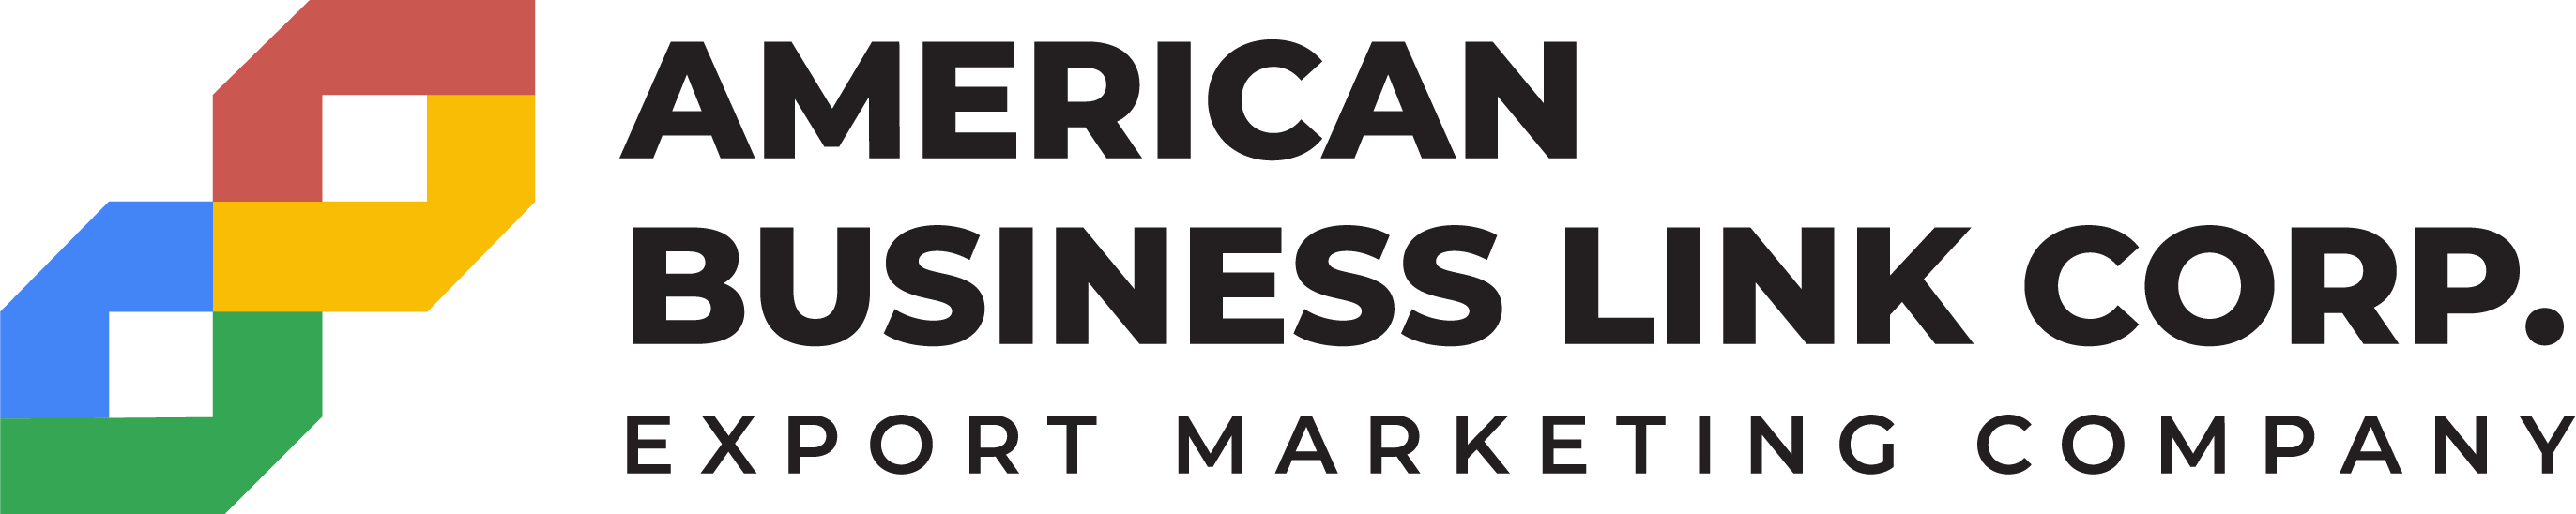 American Business Link